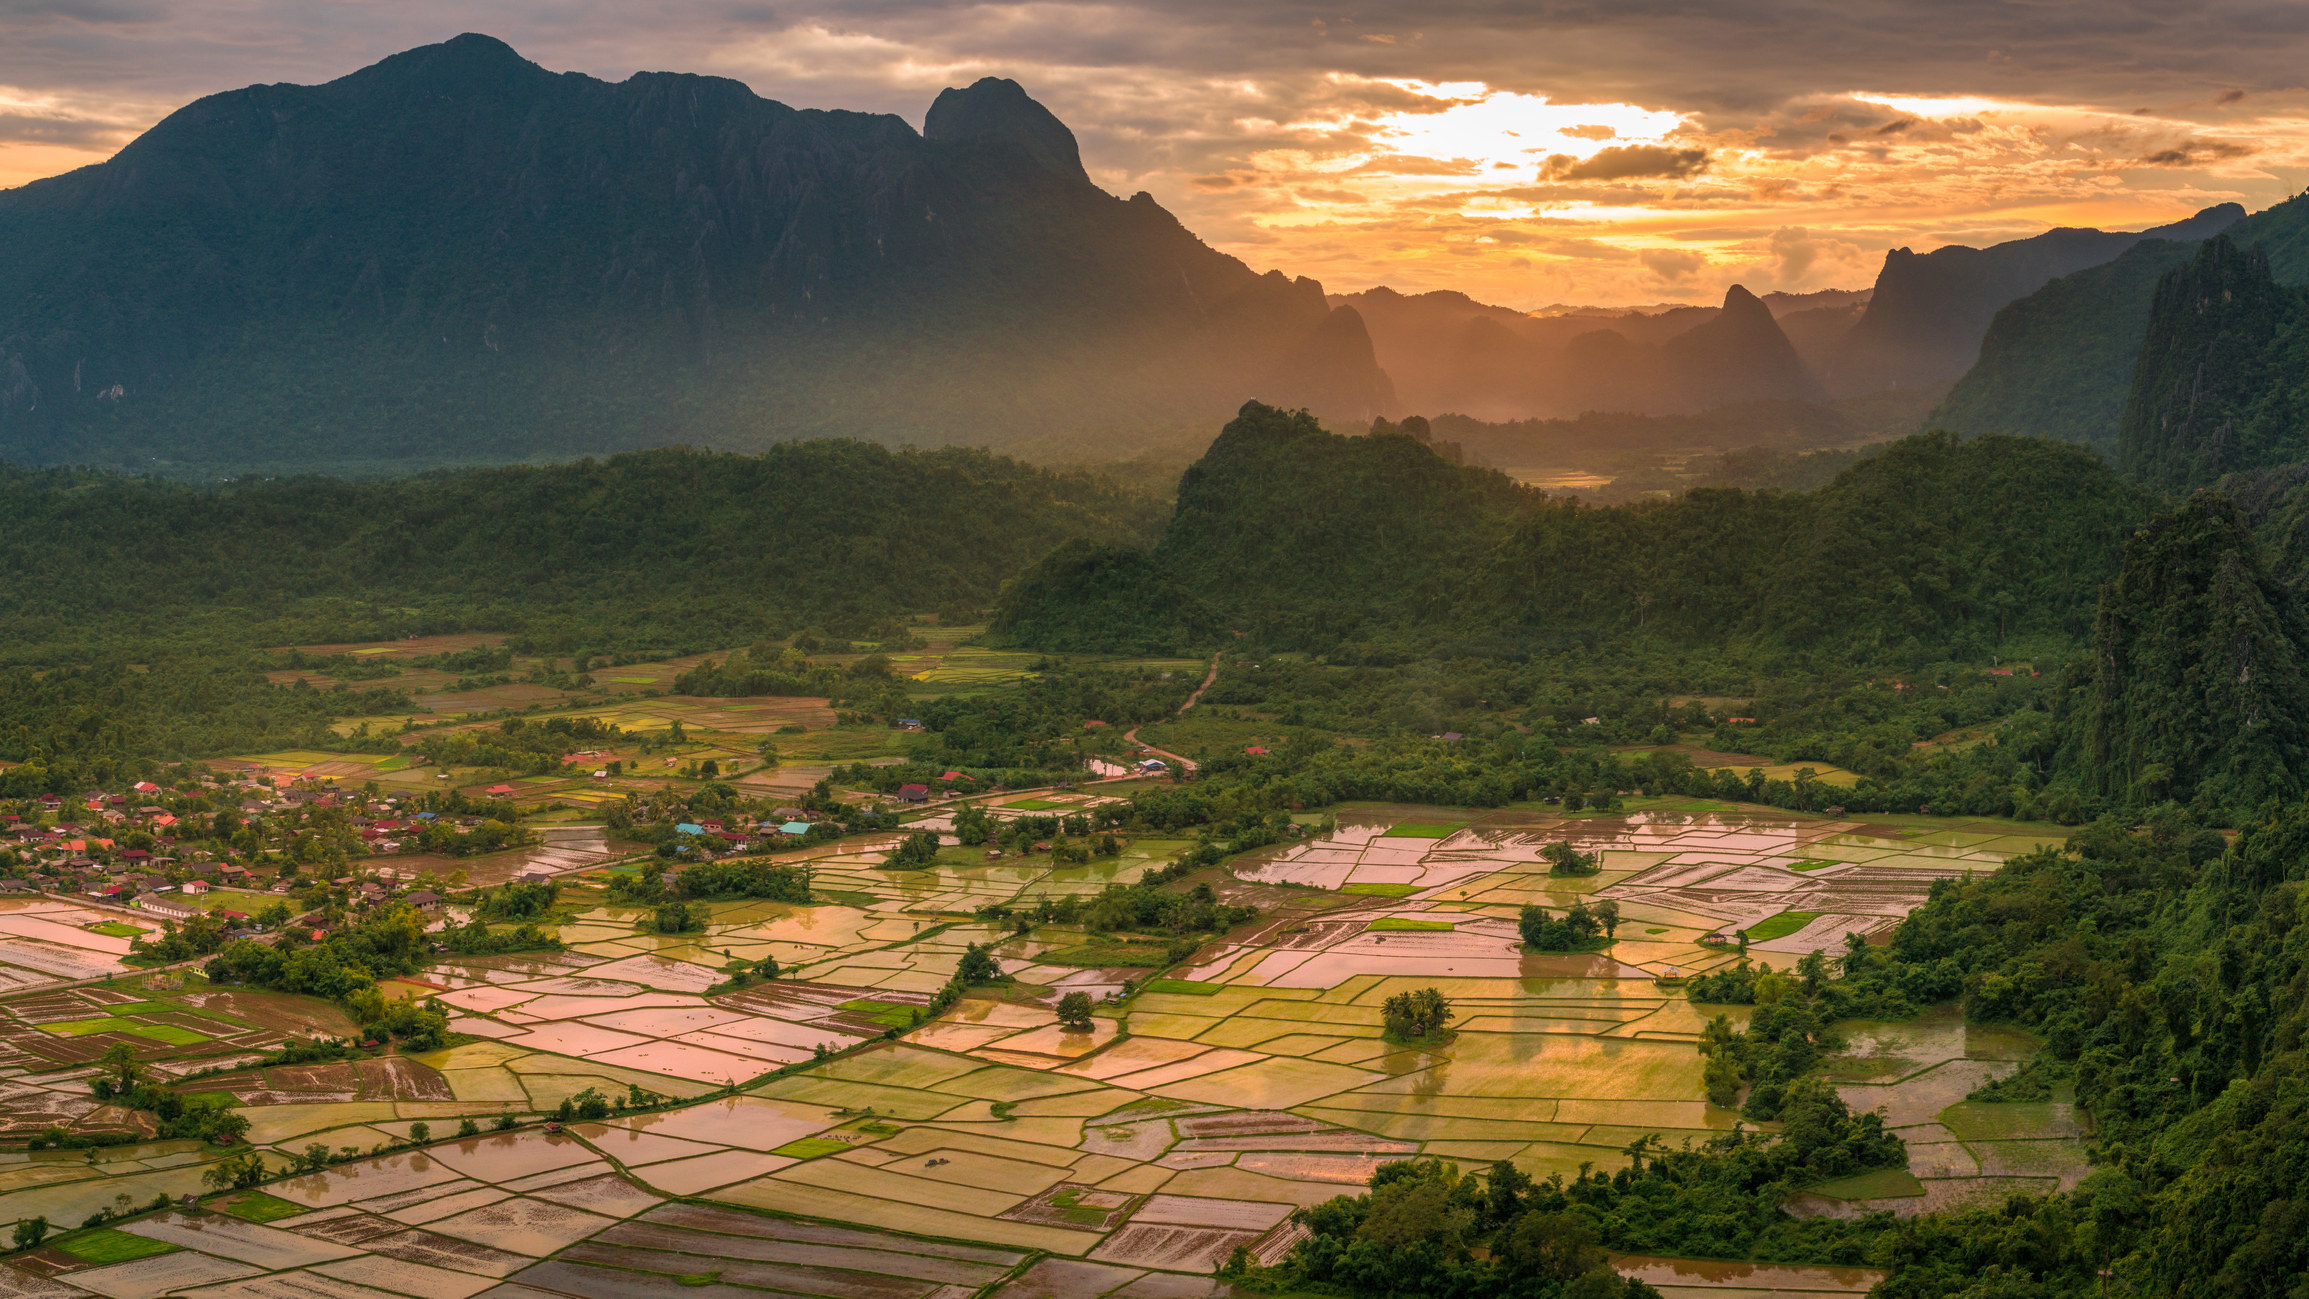 A view over rice paddy fields with big rocky mountains behind them at sunset